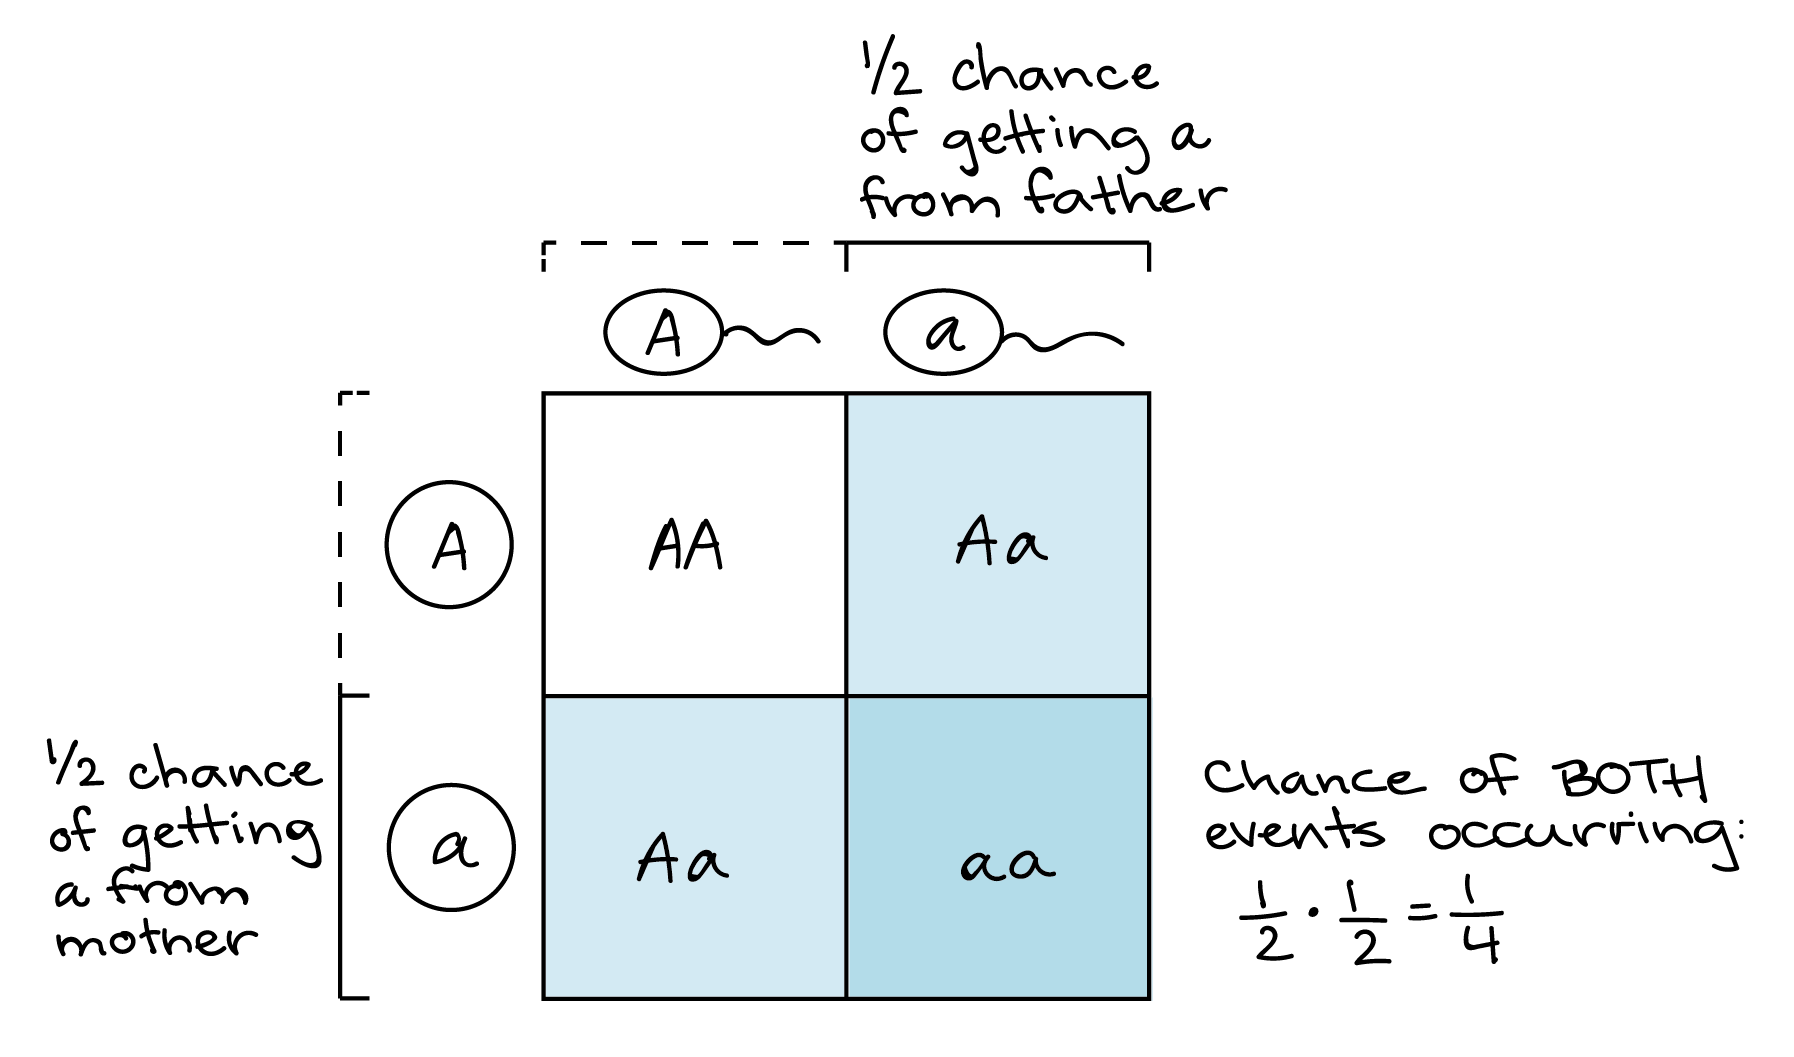 Illustration Of How A Punnett Square Can Represent The Product Rule